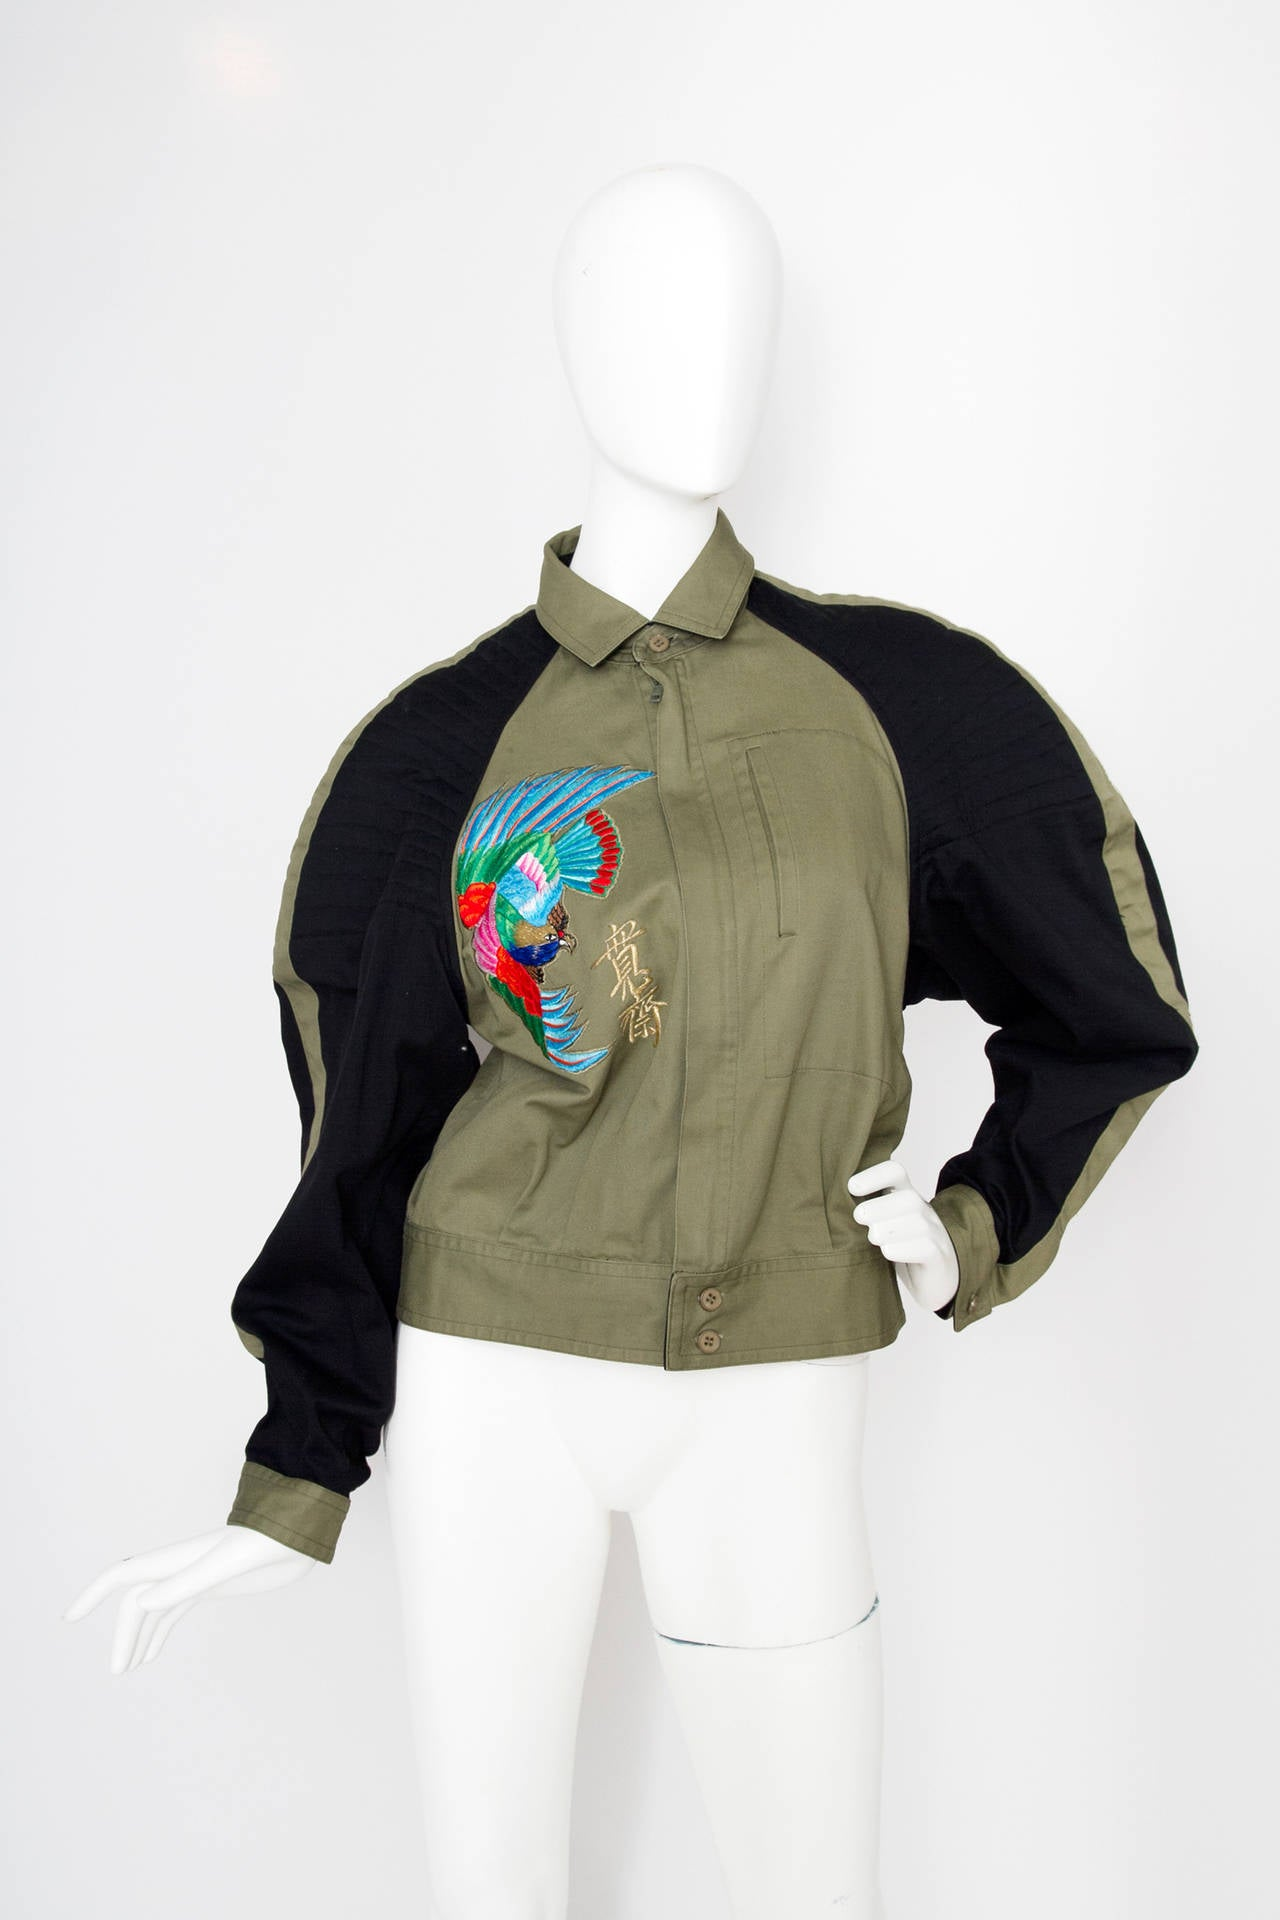 A 1980s Kansai Yamamoto cropped cotton bomber jacket with an extravagant embroidered bird pattern placed both on the front and on the back. The army green jacket has black panels on the sleeves and linear quit detailing on the shoulders. The jacket